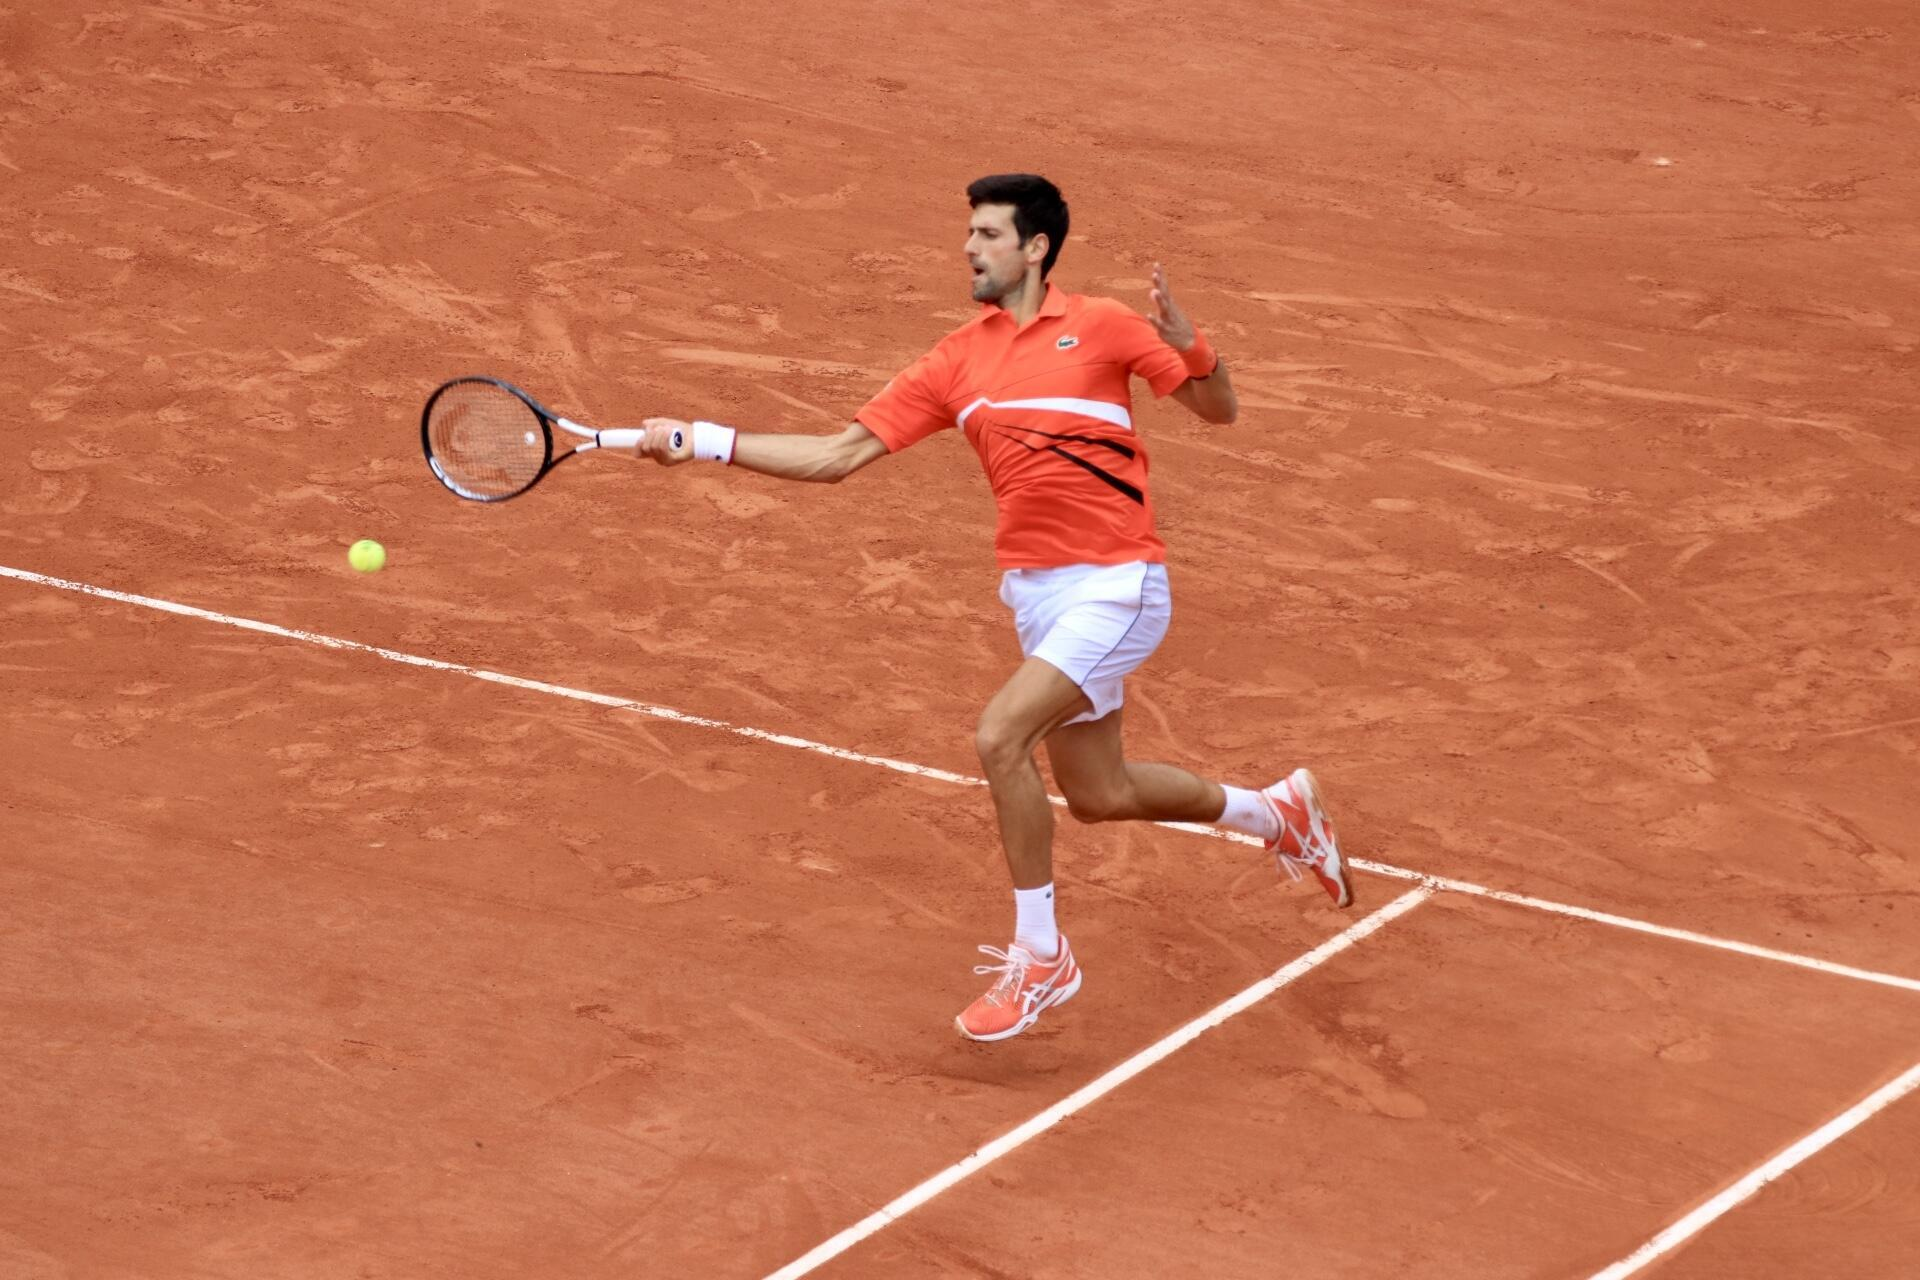 Novak Djokovic is yet to drop a set at the 2019 French Open.